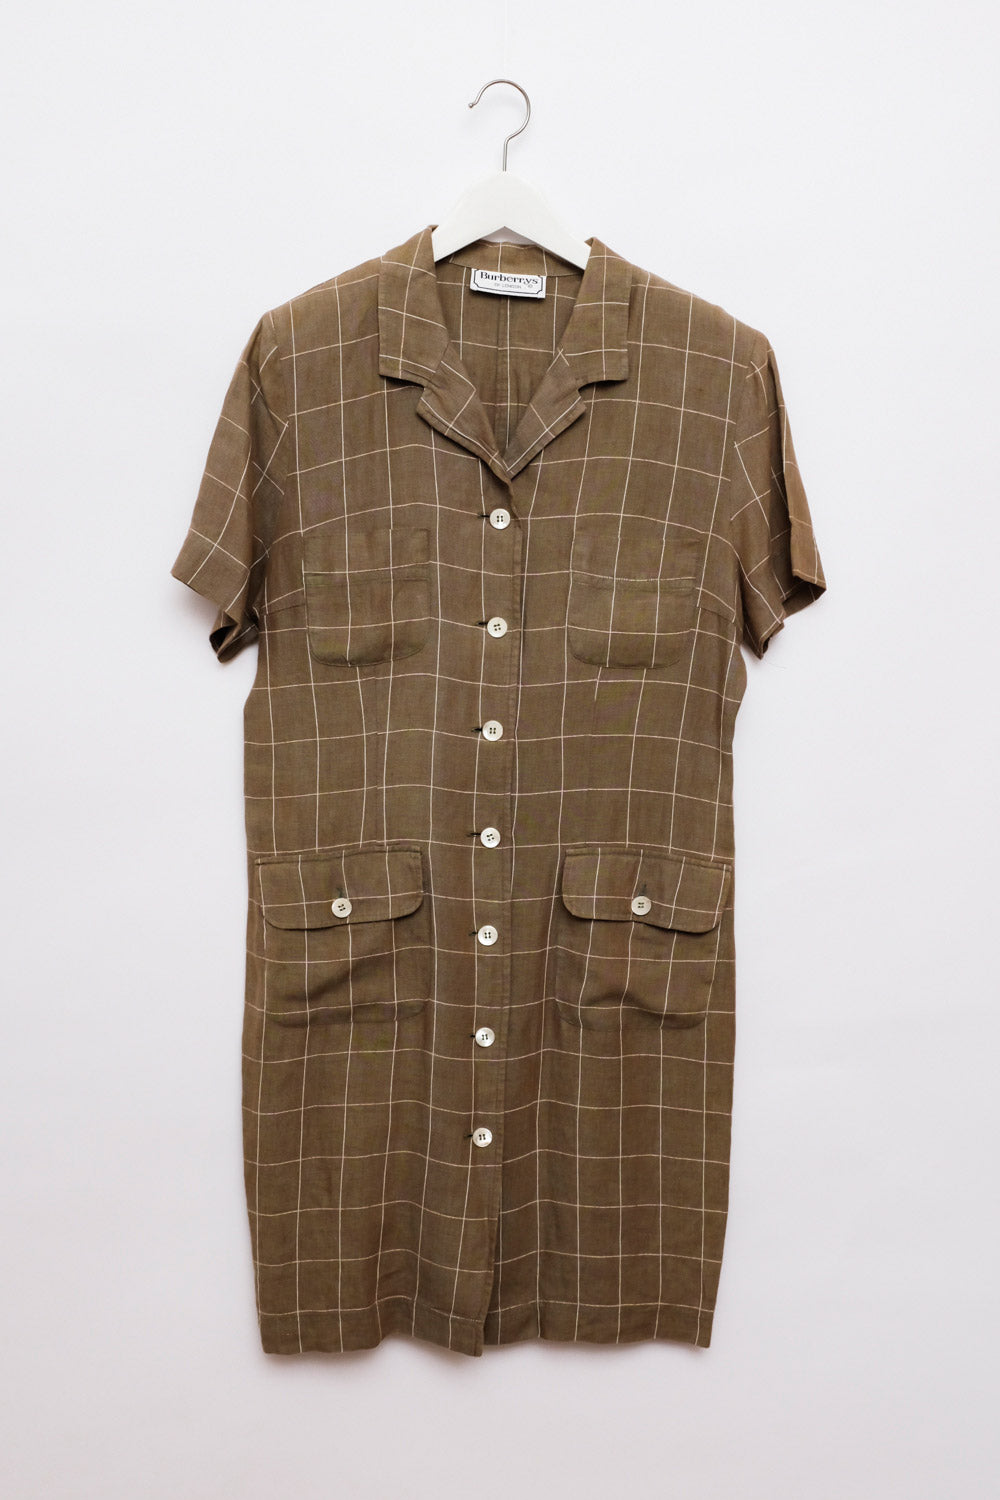 0016_BURBERRY VINTAGE LINEN SHIRT DRESS